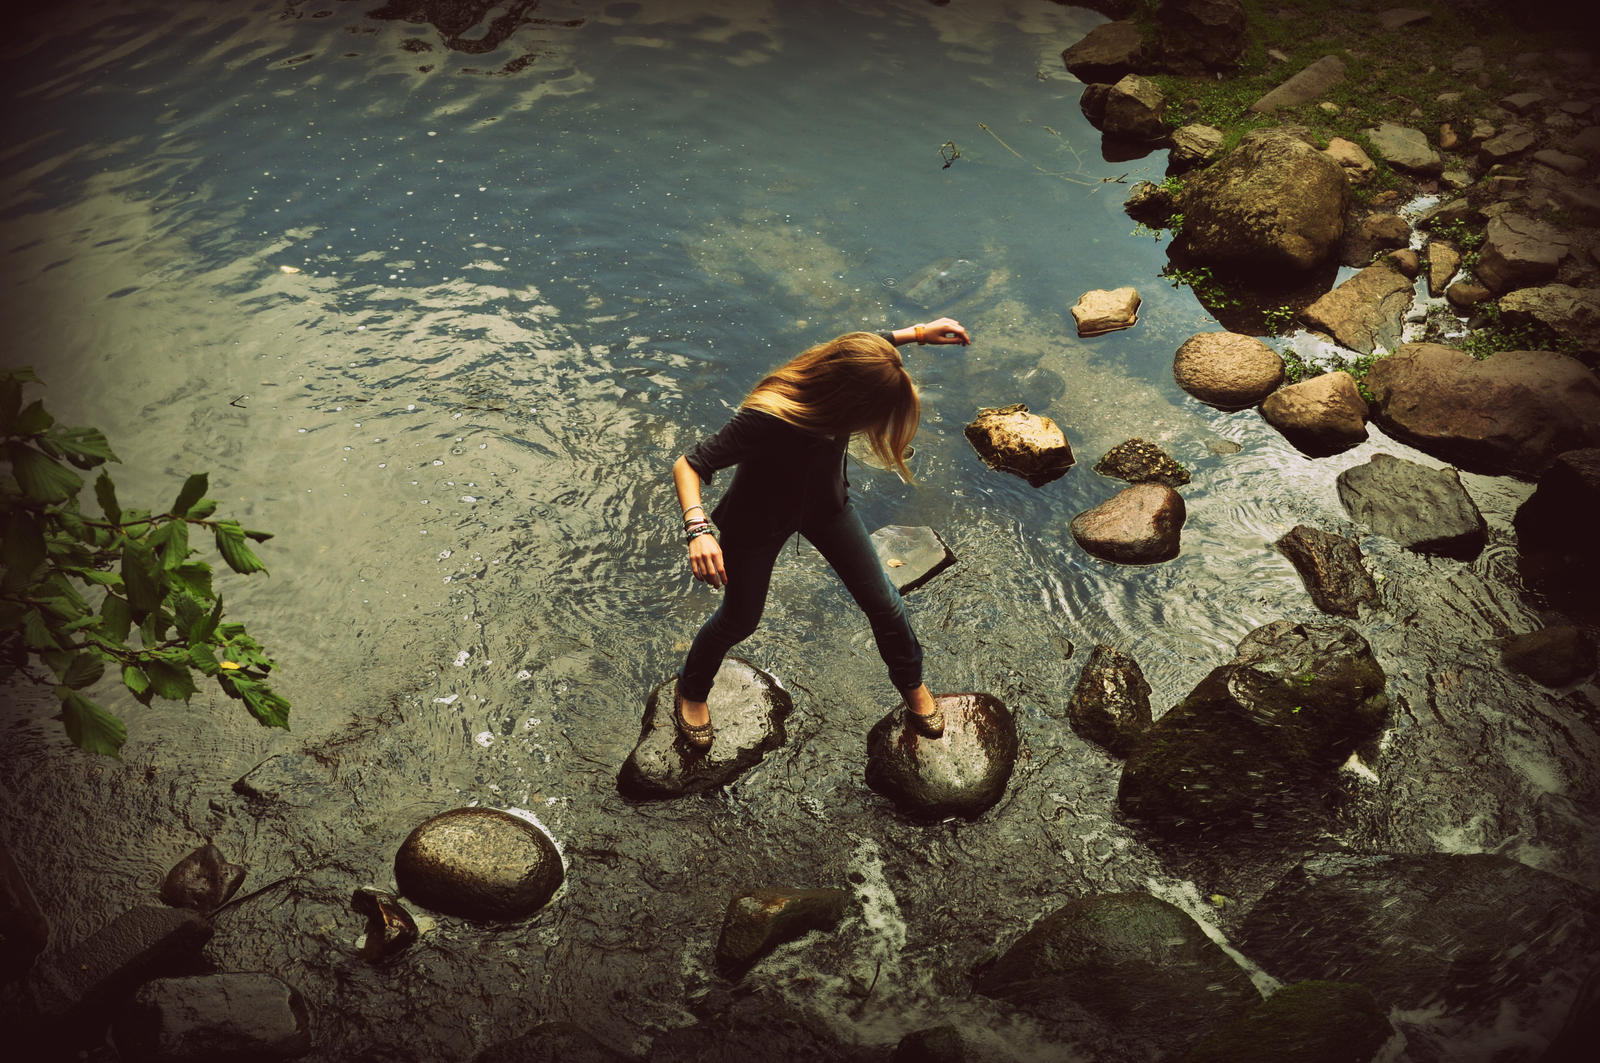 Stepping Stones of Memory